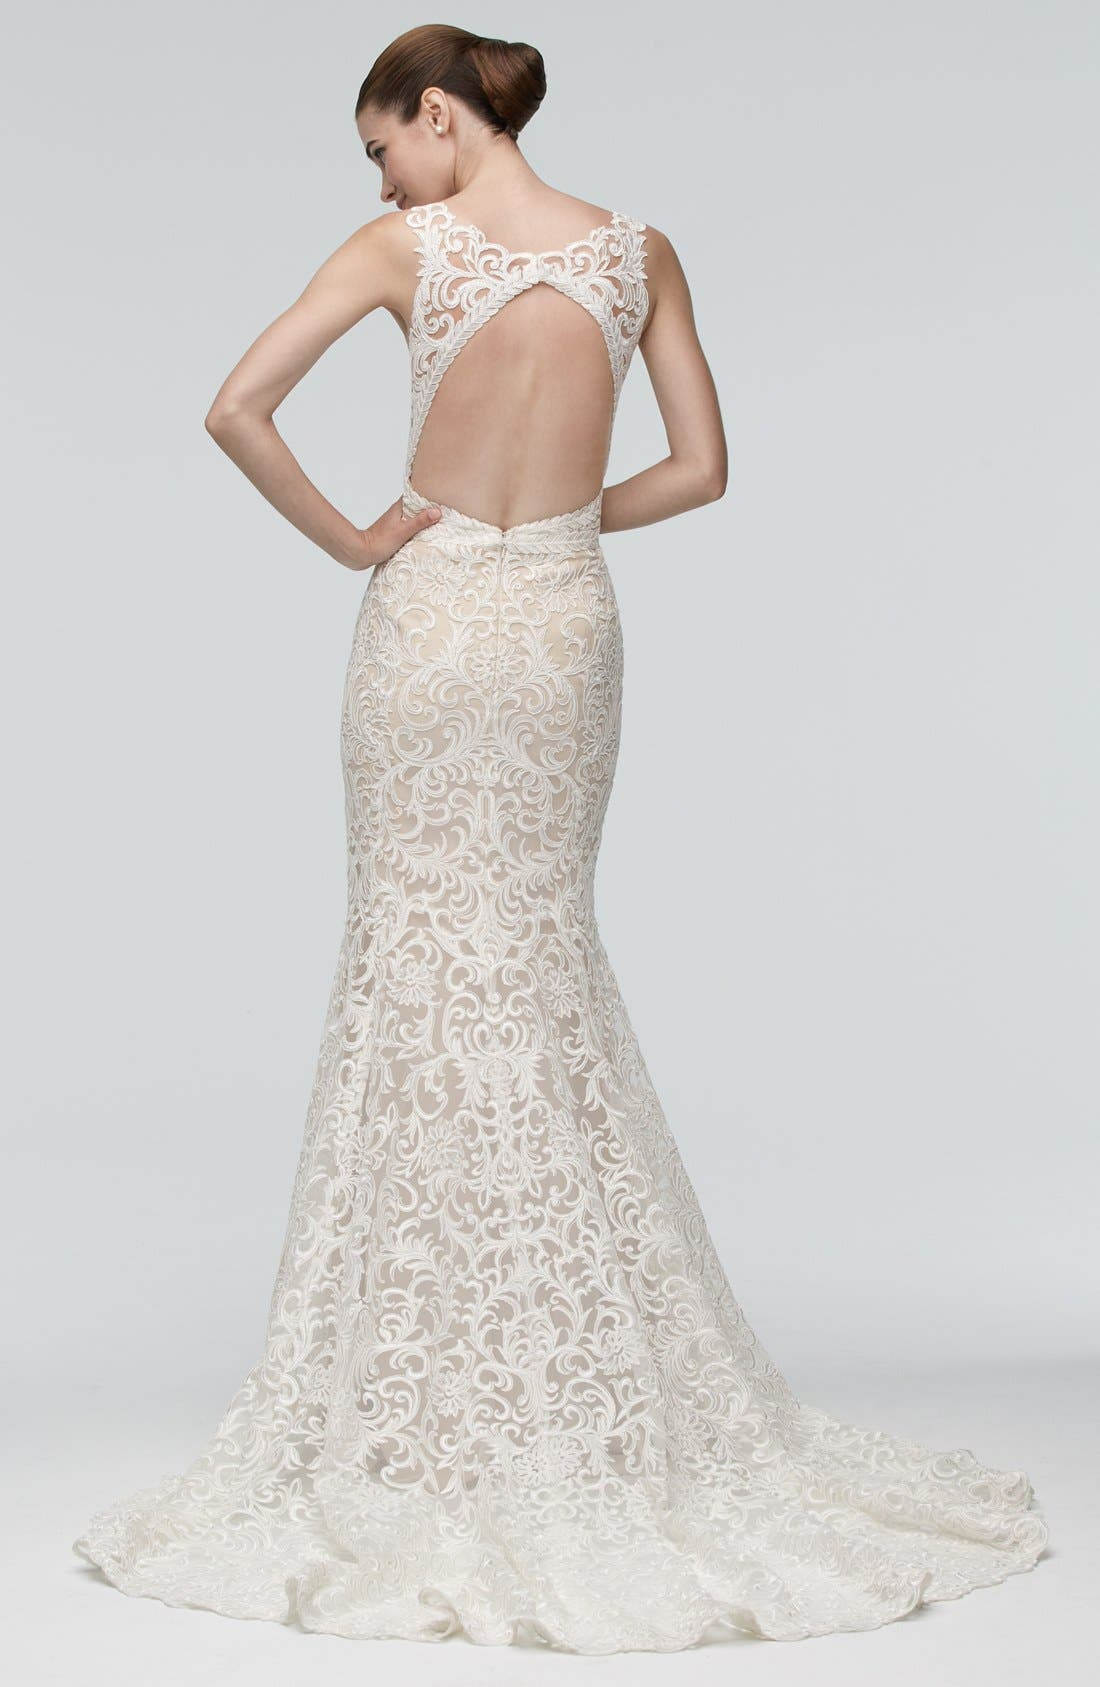 Georgia Back Cutout Lace Trumpet Gown,                             Alternate thumbnail 2, color,                             IVORY/NUDE